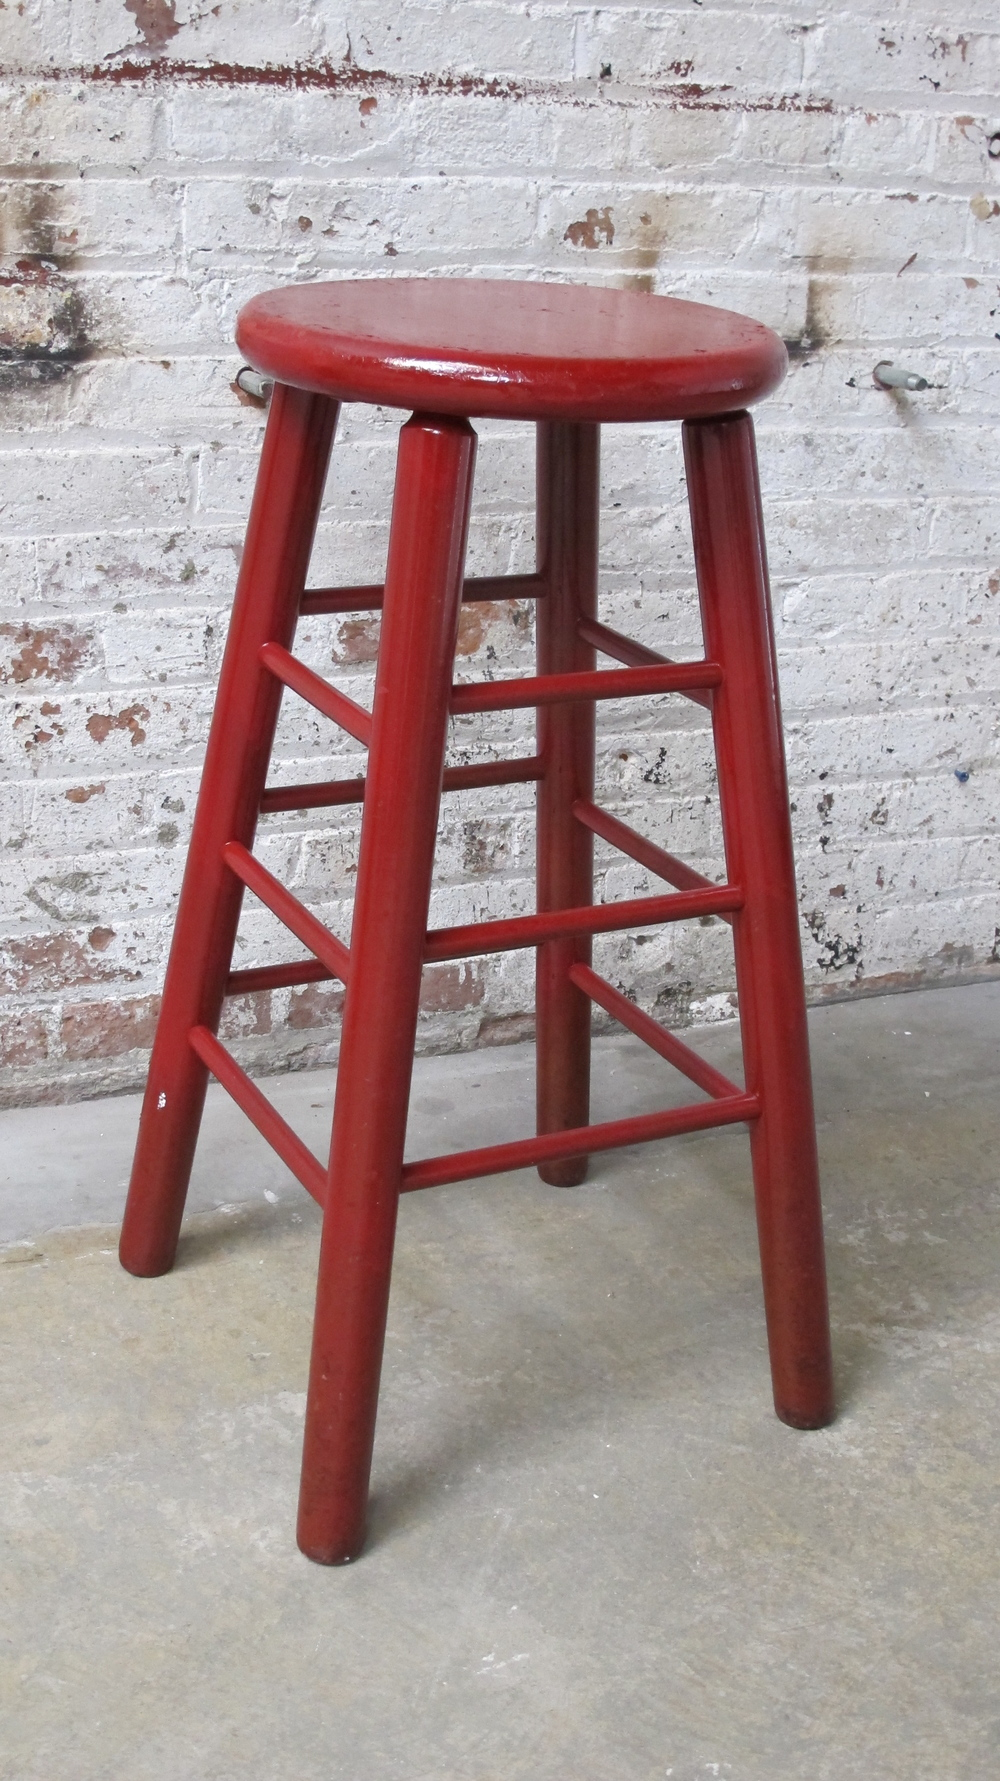 fire engine red stool $40